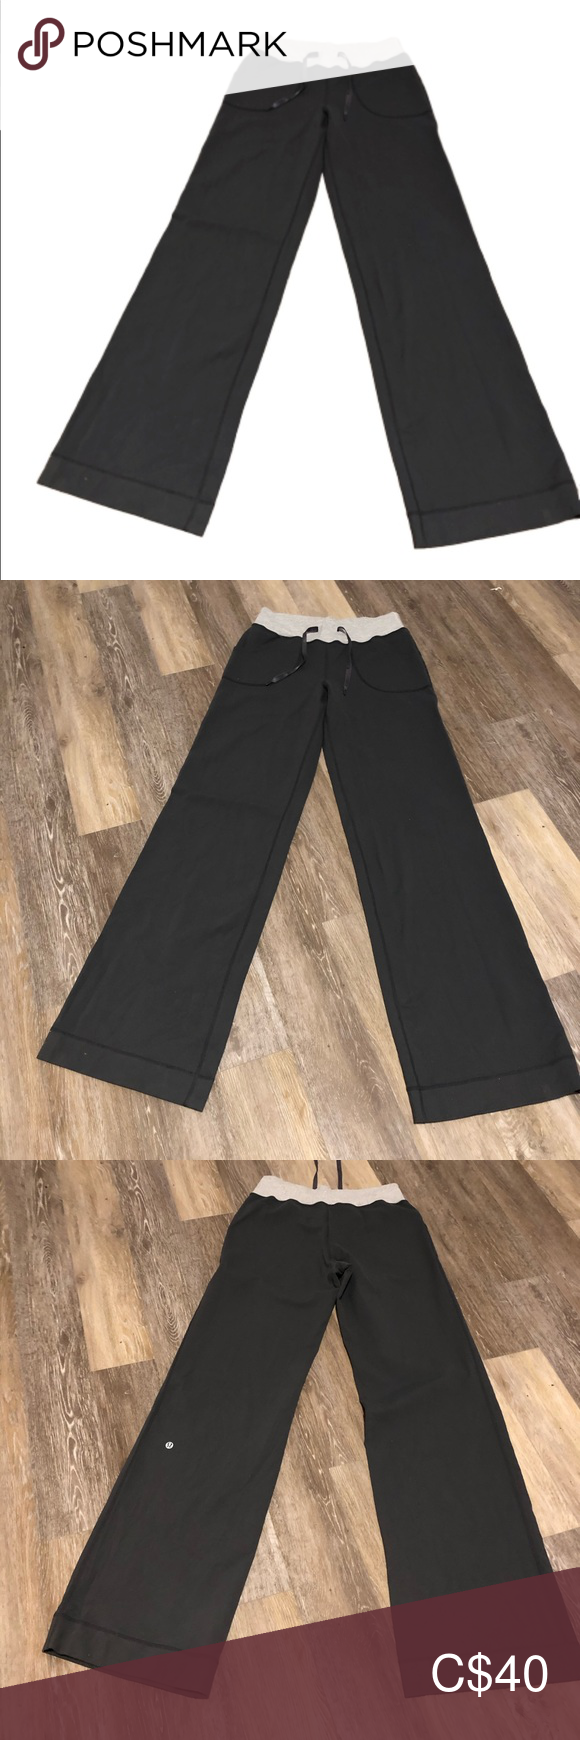 26+ Womens pants with 36 inseam ideas